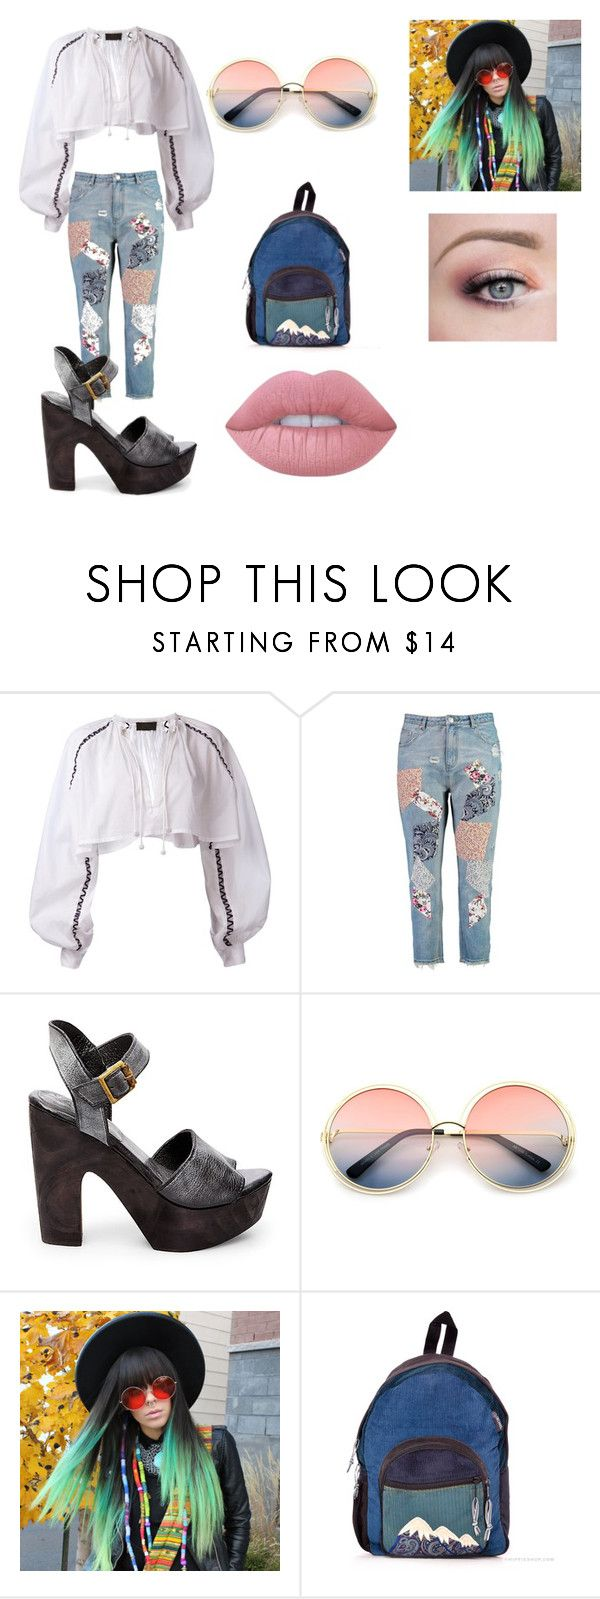 """""""Sin título #405"""" by girlblack25 on Polyvore featuring moda, MICHEL KLEIN, Boohoo, Steve Madden, ZeroUV y Lime Crime"""